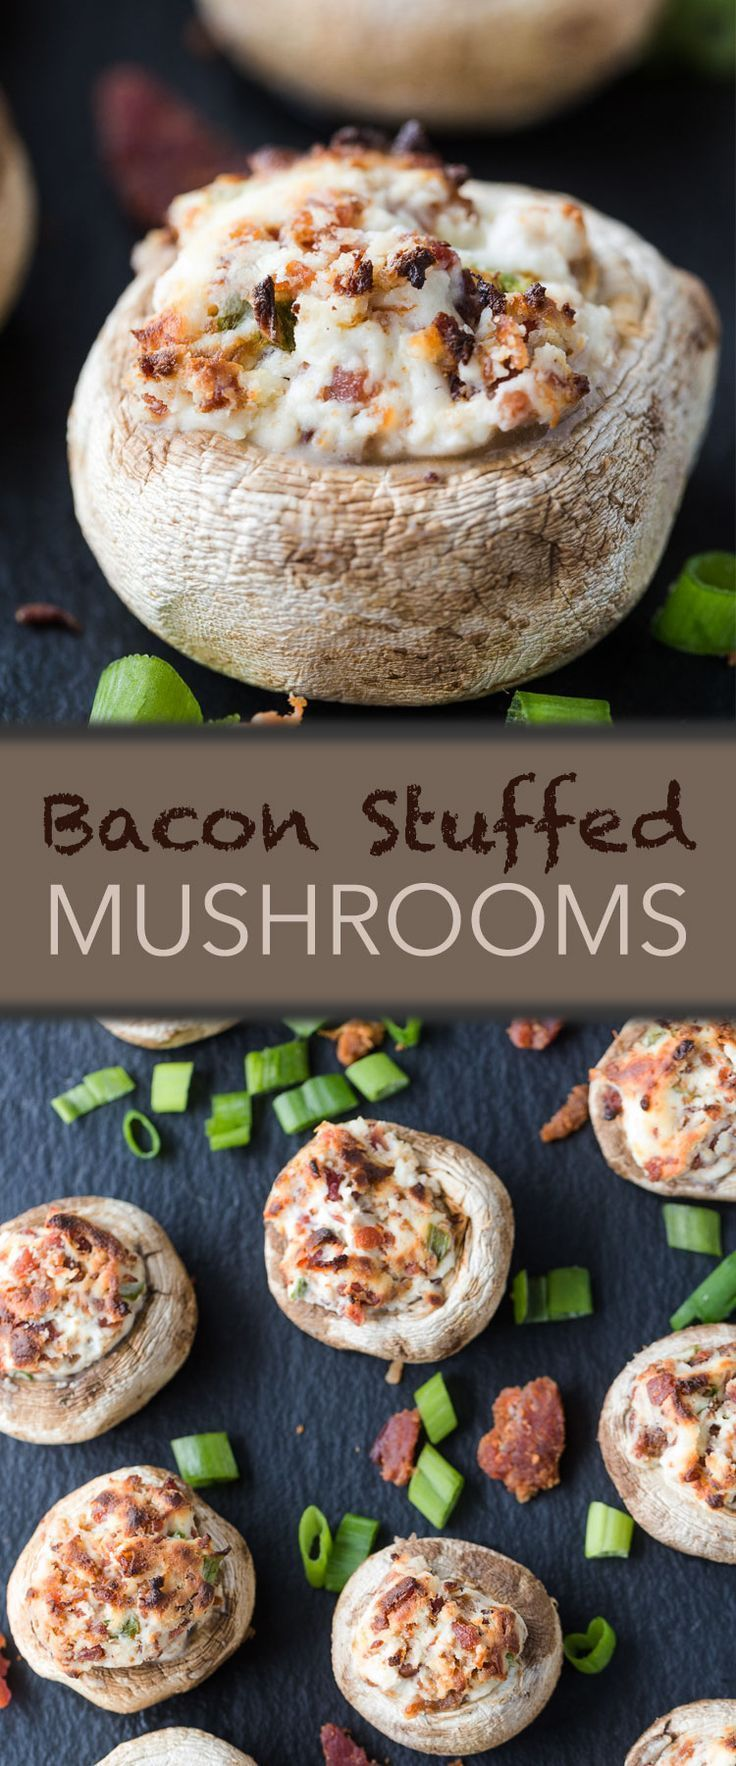 Bacon Stuffed Mushrooms Appetizer Recipe